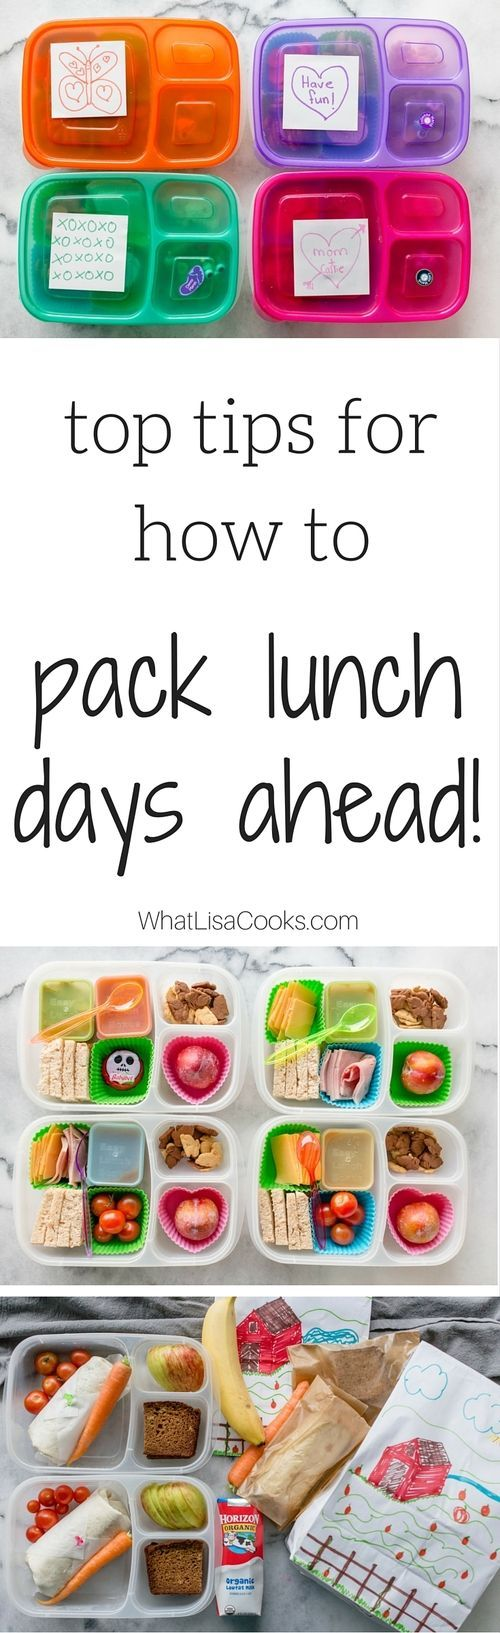 With these great tips and tricks, you can pack lunch days in advance and save yourself tons of time! from @What Lisa Cooks (Lisa Marsh)